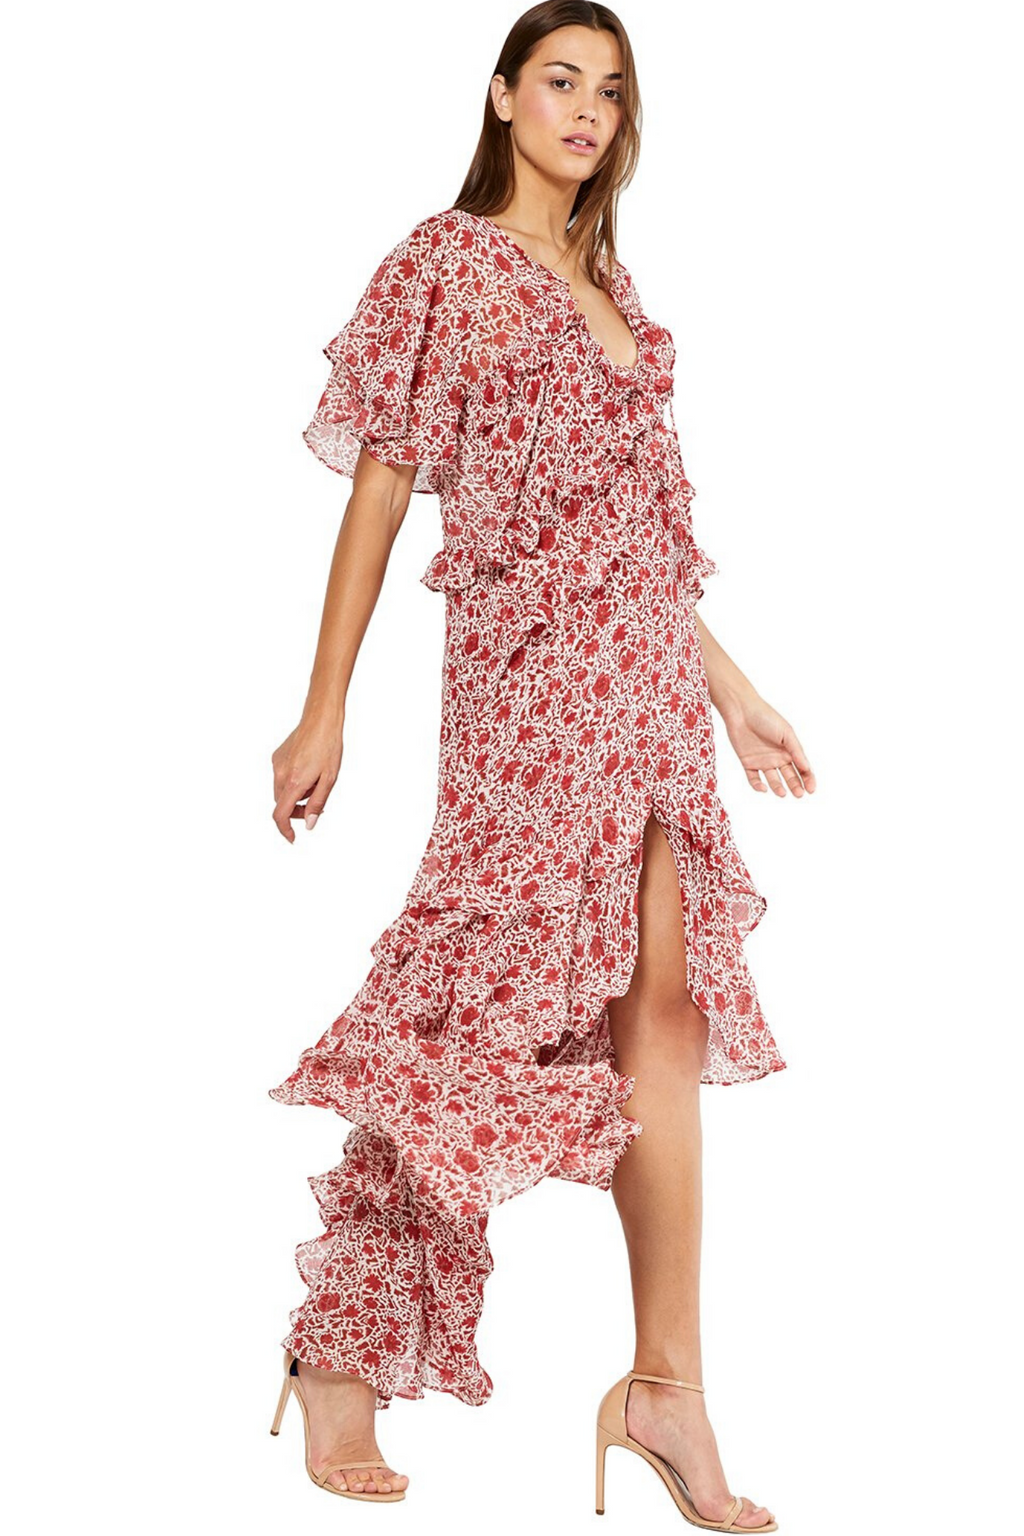 Katarina Dress Rust Animal Floral